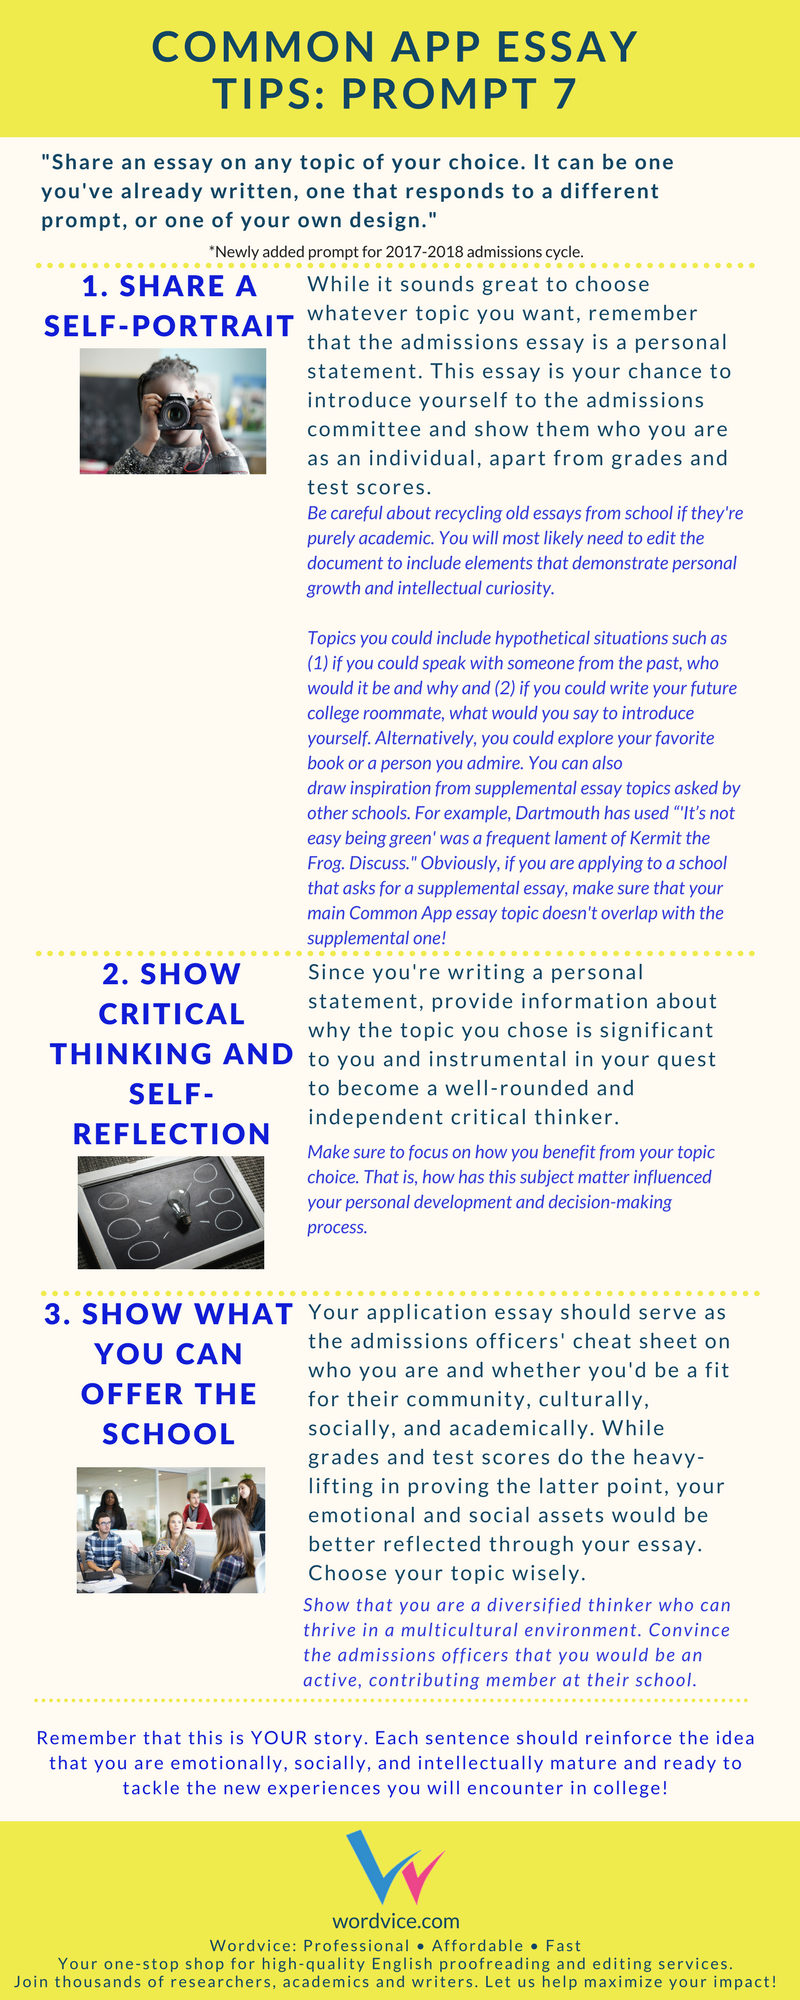 How To Choose The Best Topic For The Common App Essay Prompt   College Admissions Essay Advice How To Answer The Common App Topic Of  Your Choice